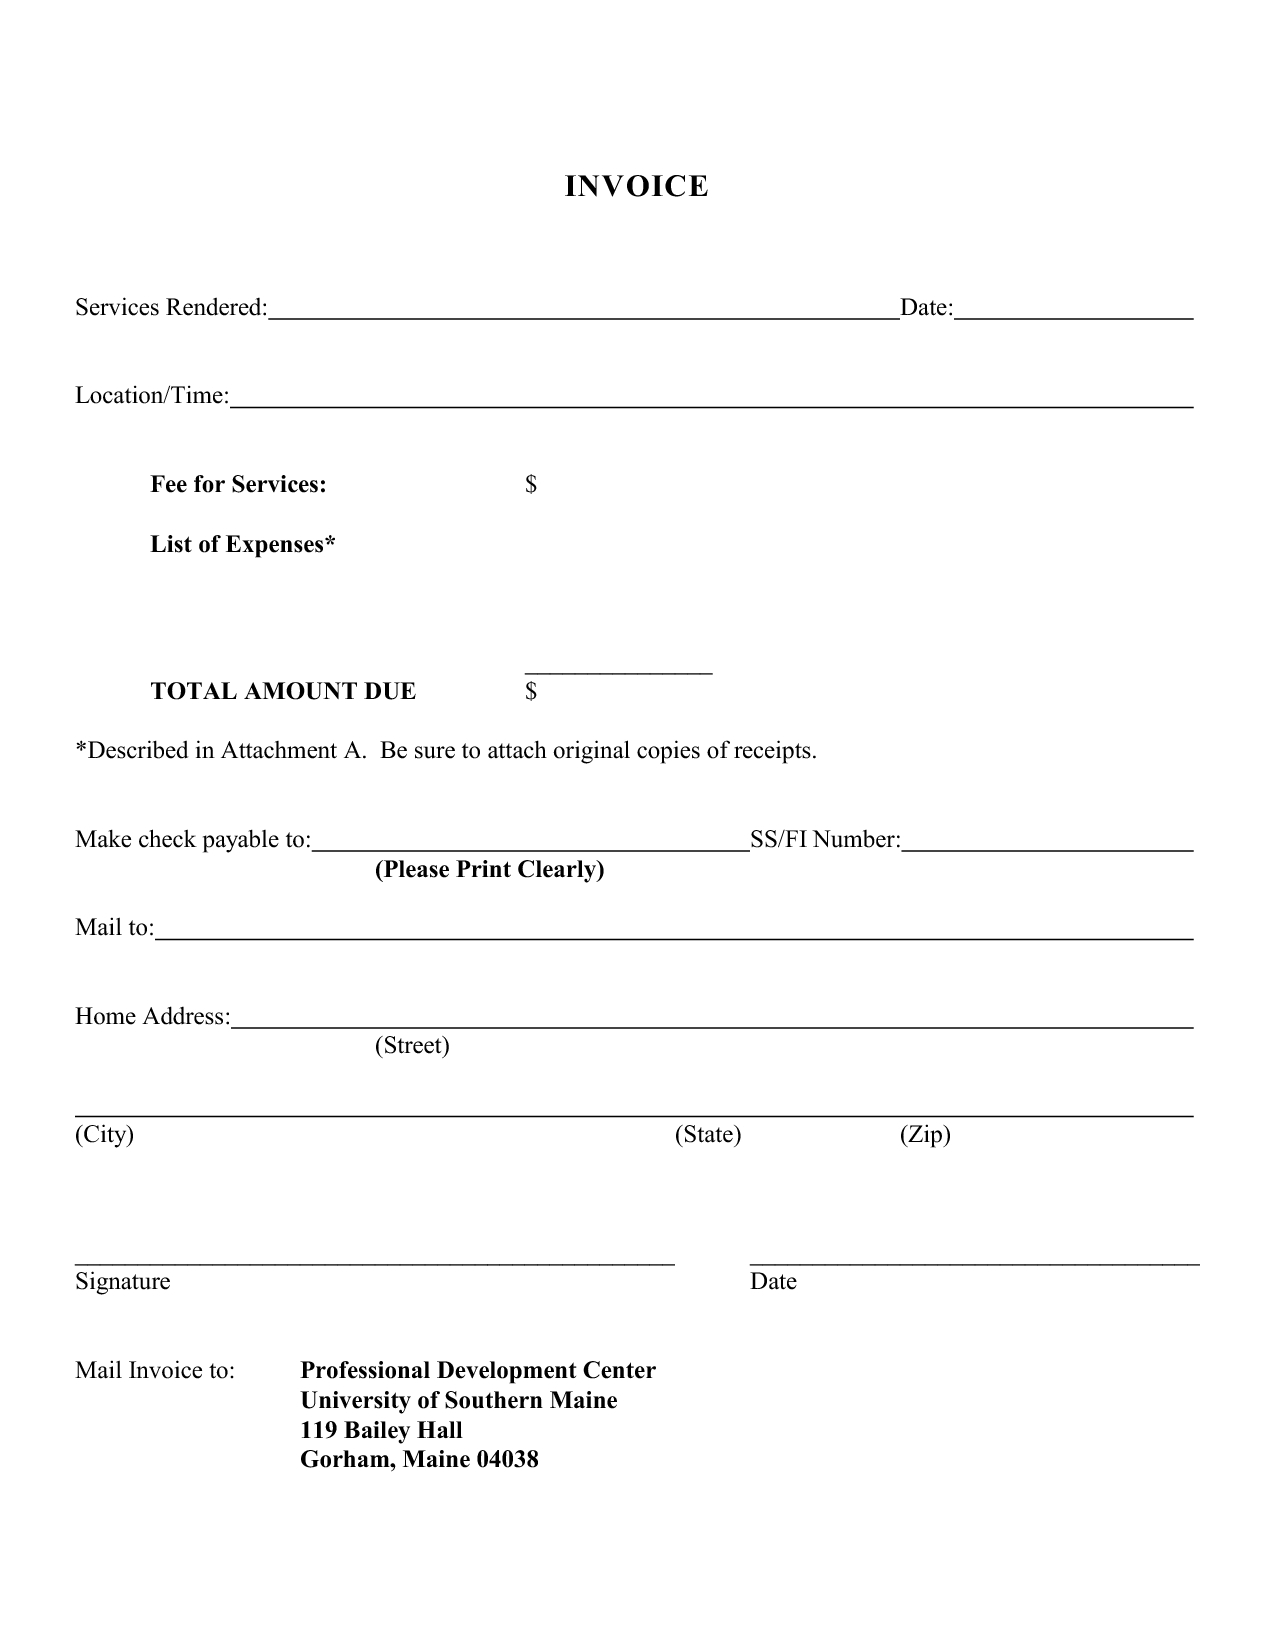 Blank Invoice Template 46 Documents In Word Excel Pdf Template For Invoice For Services Rendered Invoice